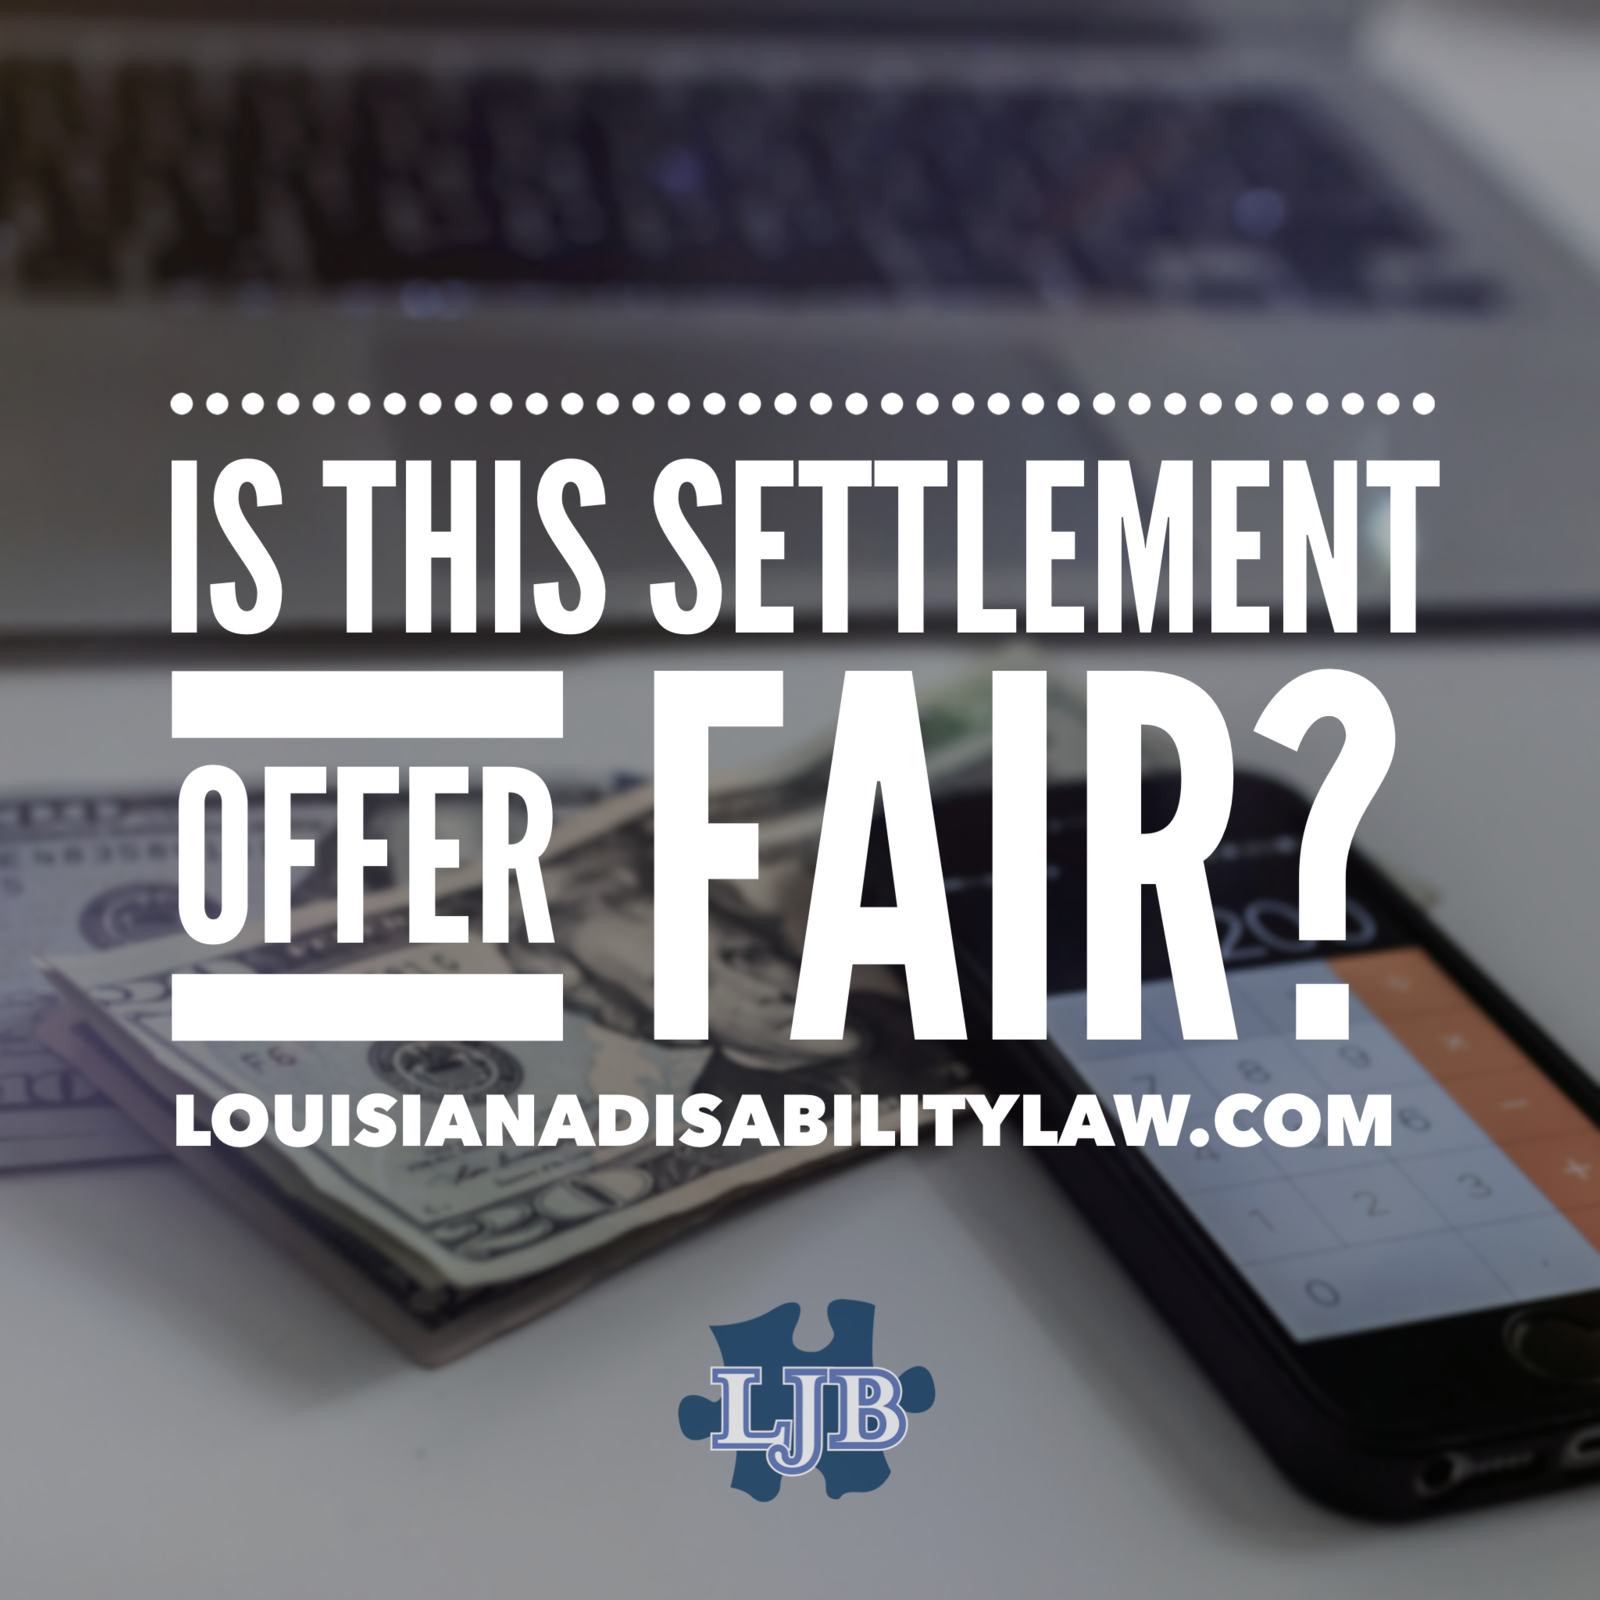 Is this settlement offer fair?